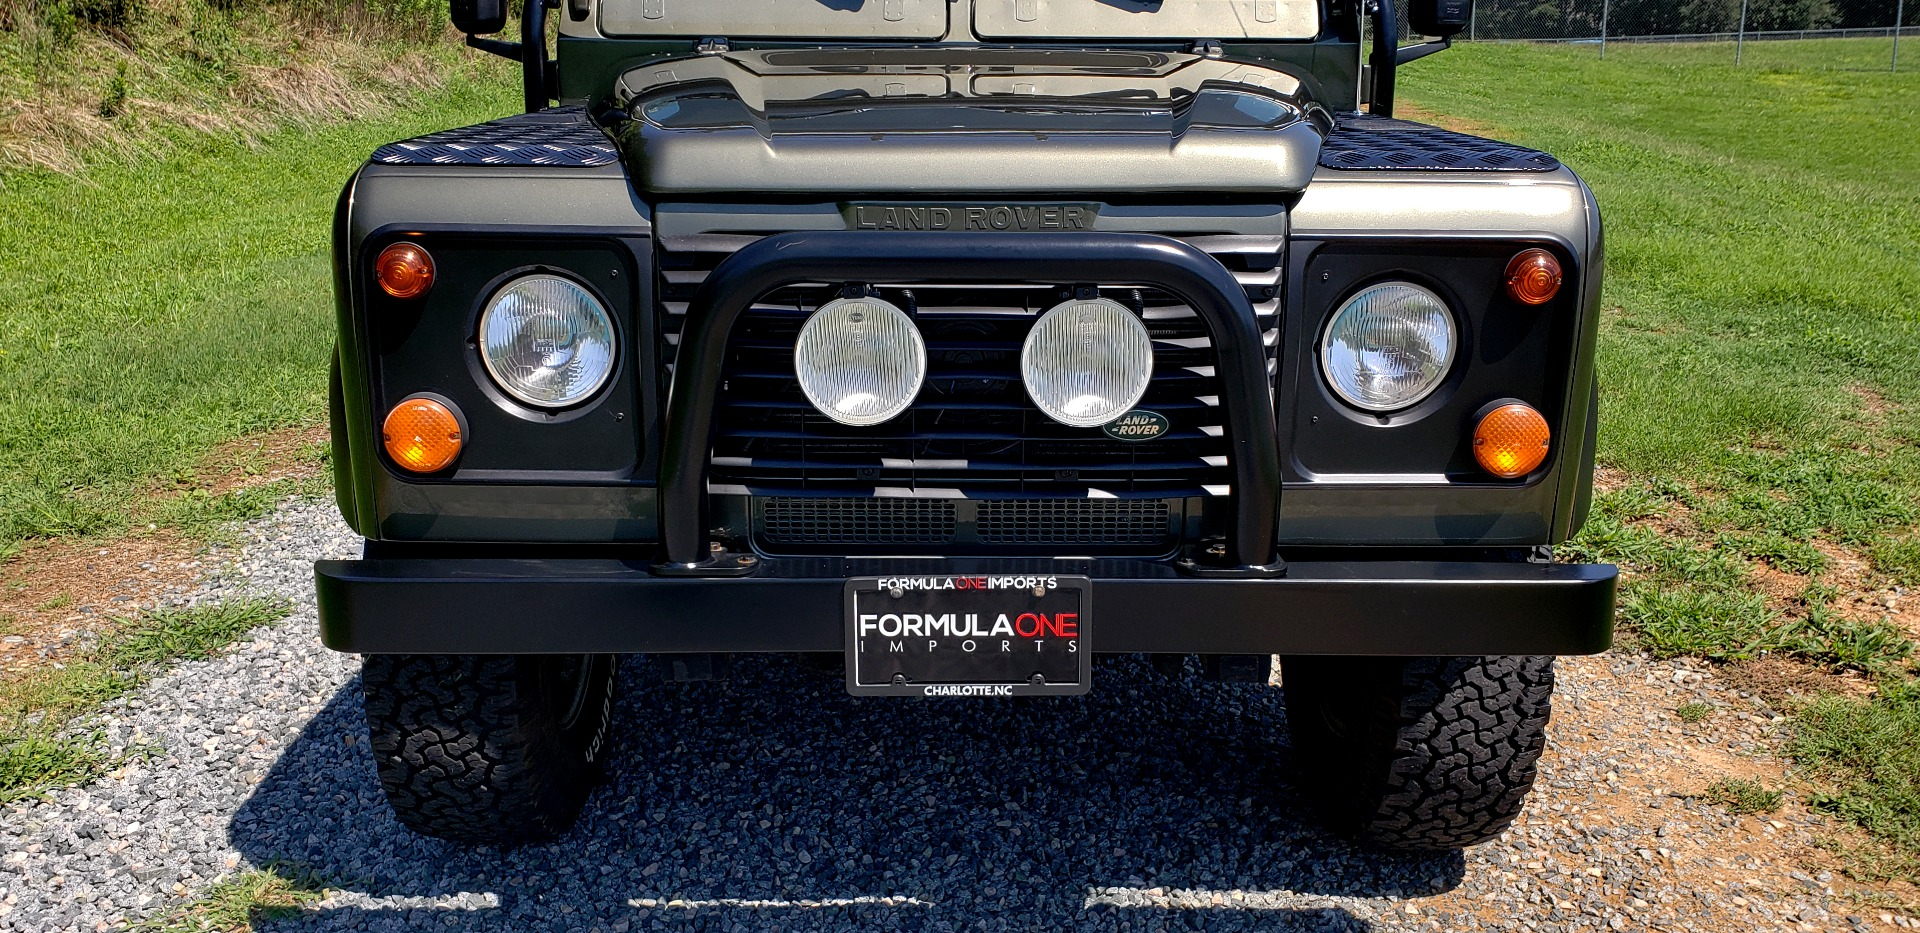 Used 1997 Land Rover DEFENDER 90 LIMITED EDITION / HARD-TOP / 4WD / FULLY RESTORED / LOW MILES for sale $119,000 at Formula Imports in Charlotte NC 28227 29